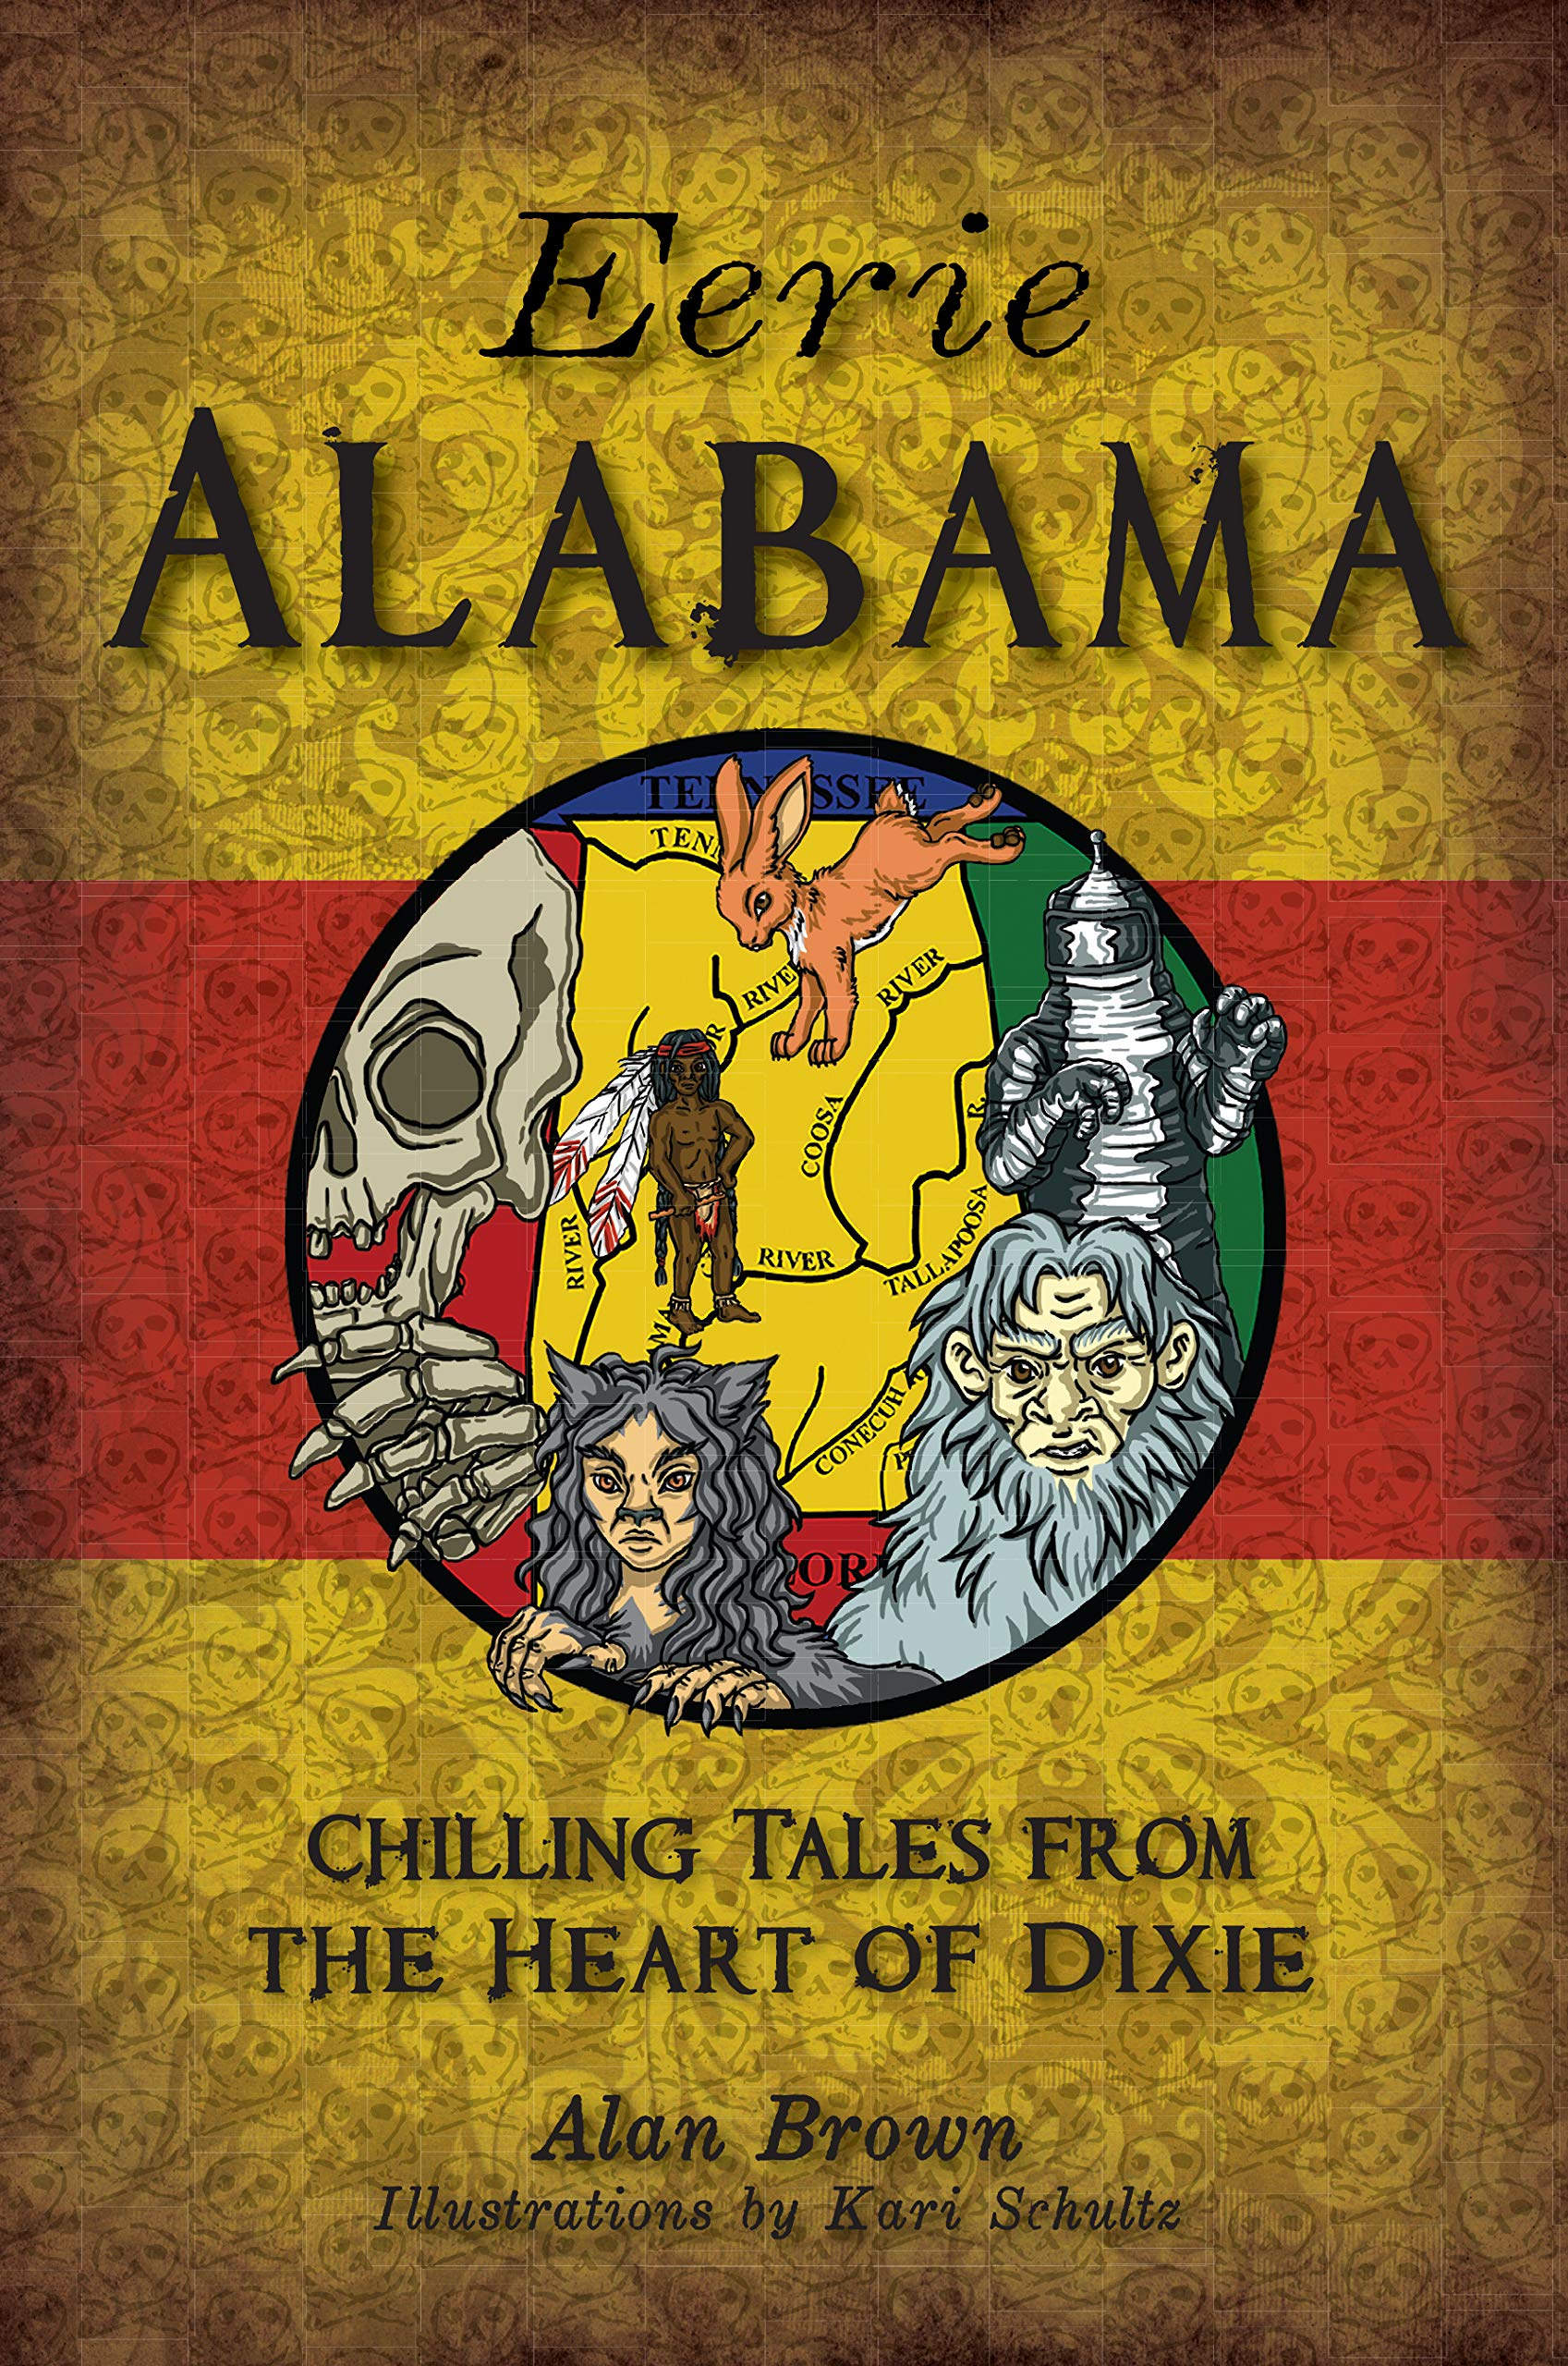 Eerie Alabama: Chilling Tales from the Heart of Dixie by The History Press